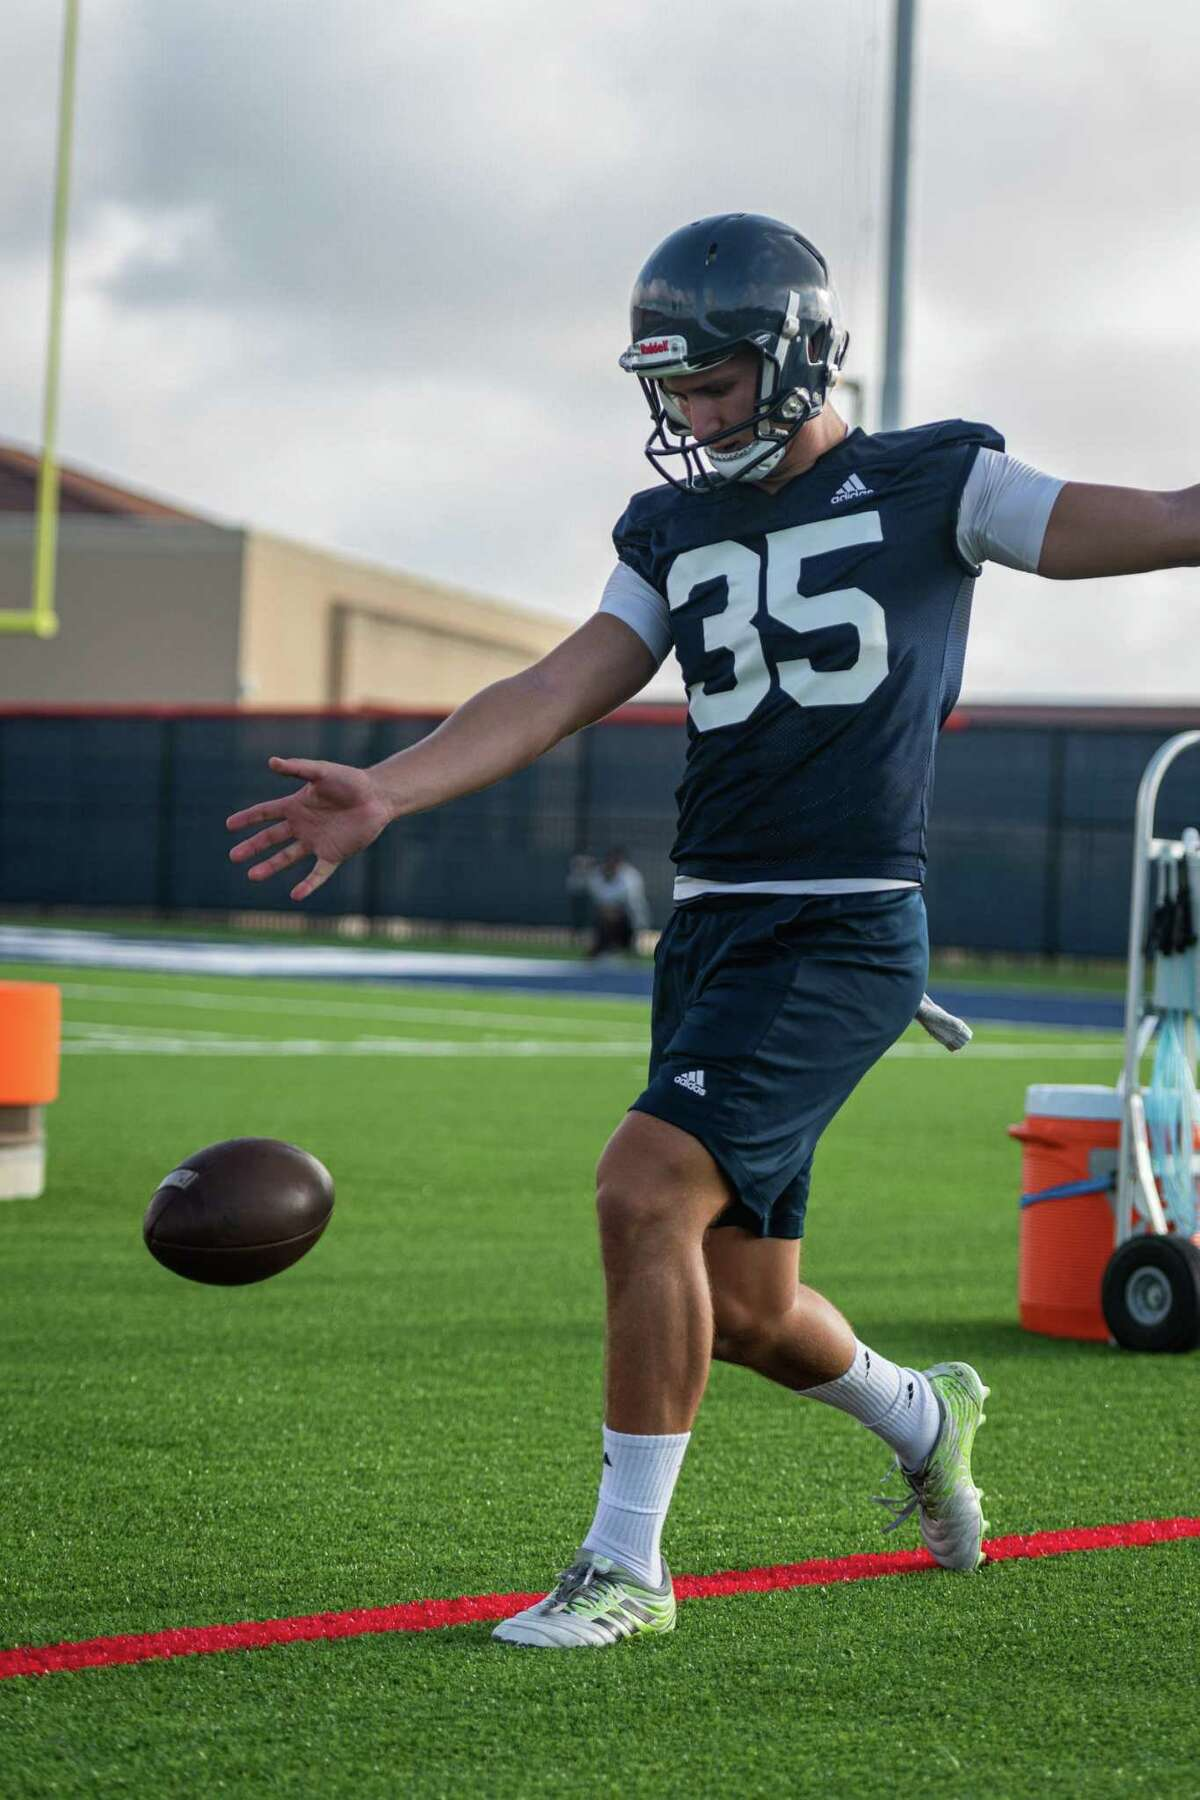 On Saturday morning of August 7th, 2021, UTSA's football team holds practice on the field by the new Roadrunner Athletic Center of Excellence (RACE) in San Antonio, Texas. Here, Punter Lucas Dean practices kicks.